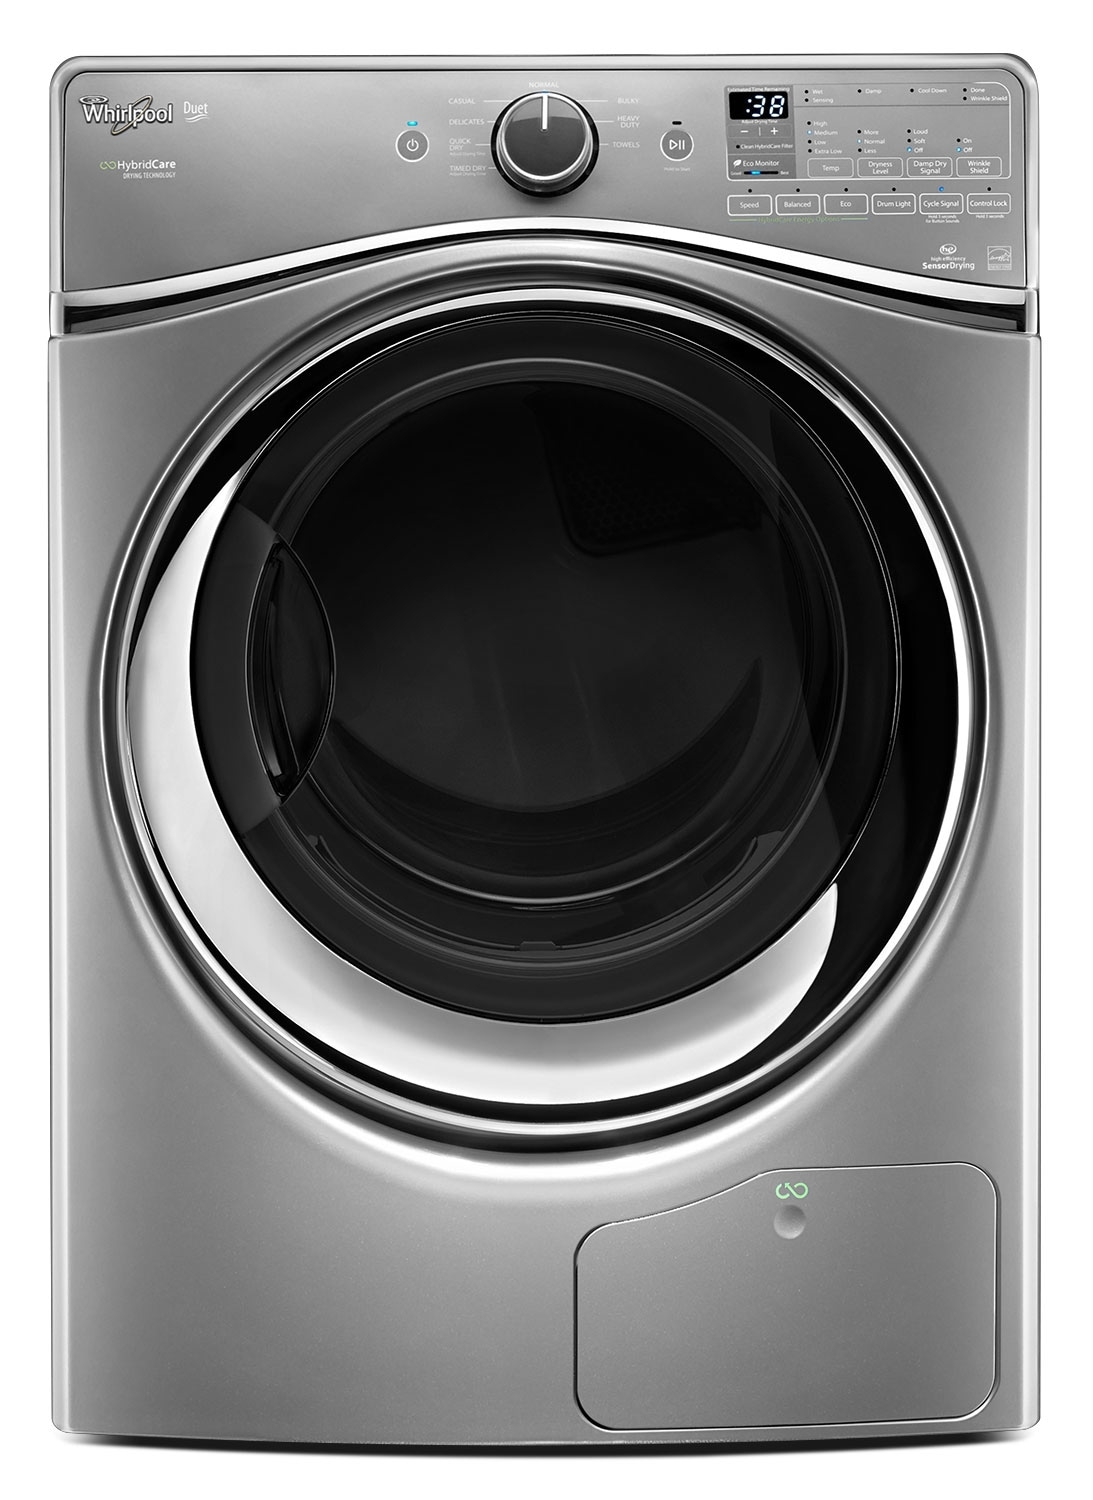 Whirlpool 7.3 Cu. Ft. HybridCare™ Ventless Duet® Dryer - Chrome